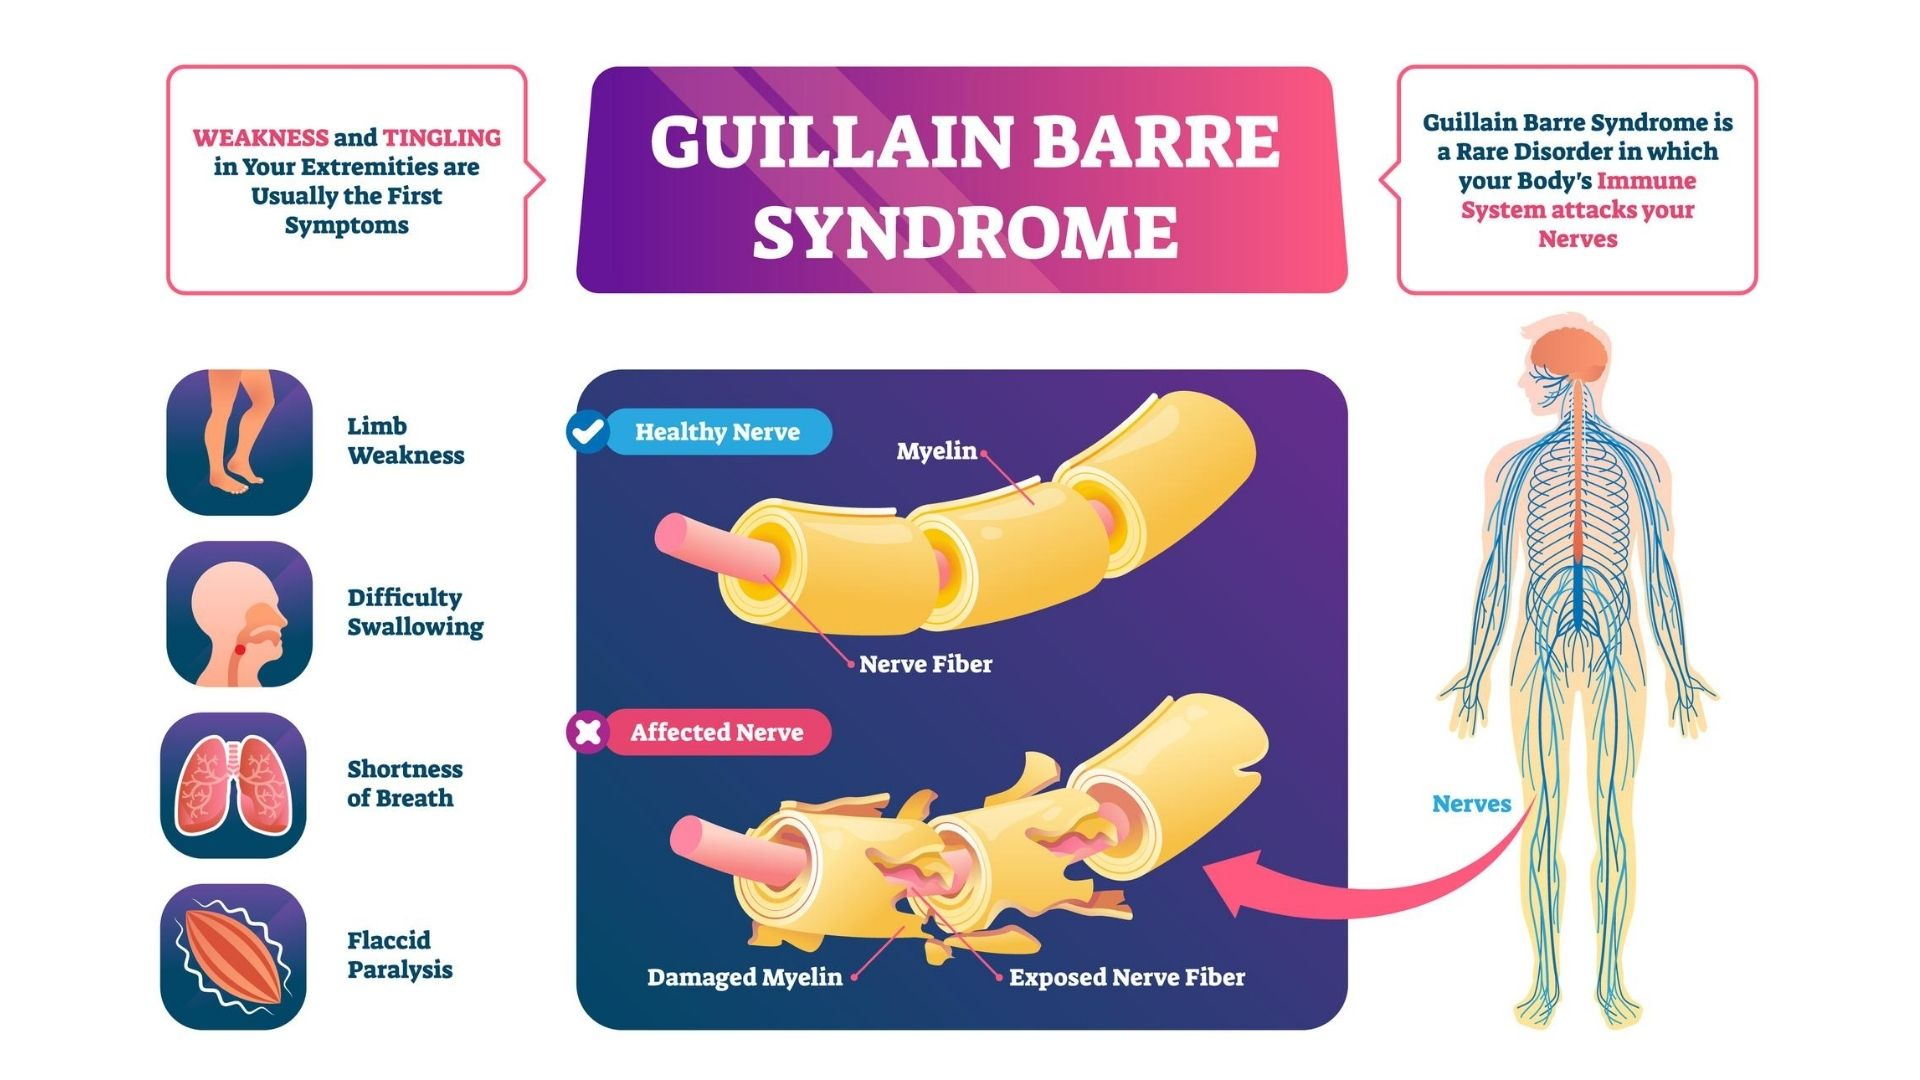 guillain barre syndrome treatment propel physiotherapy